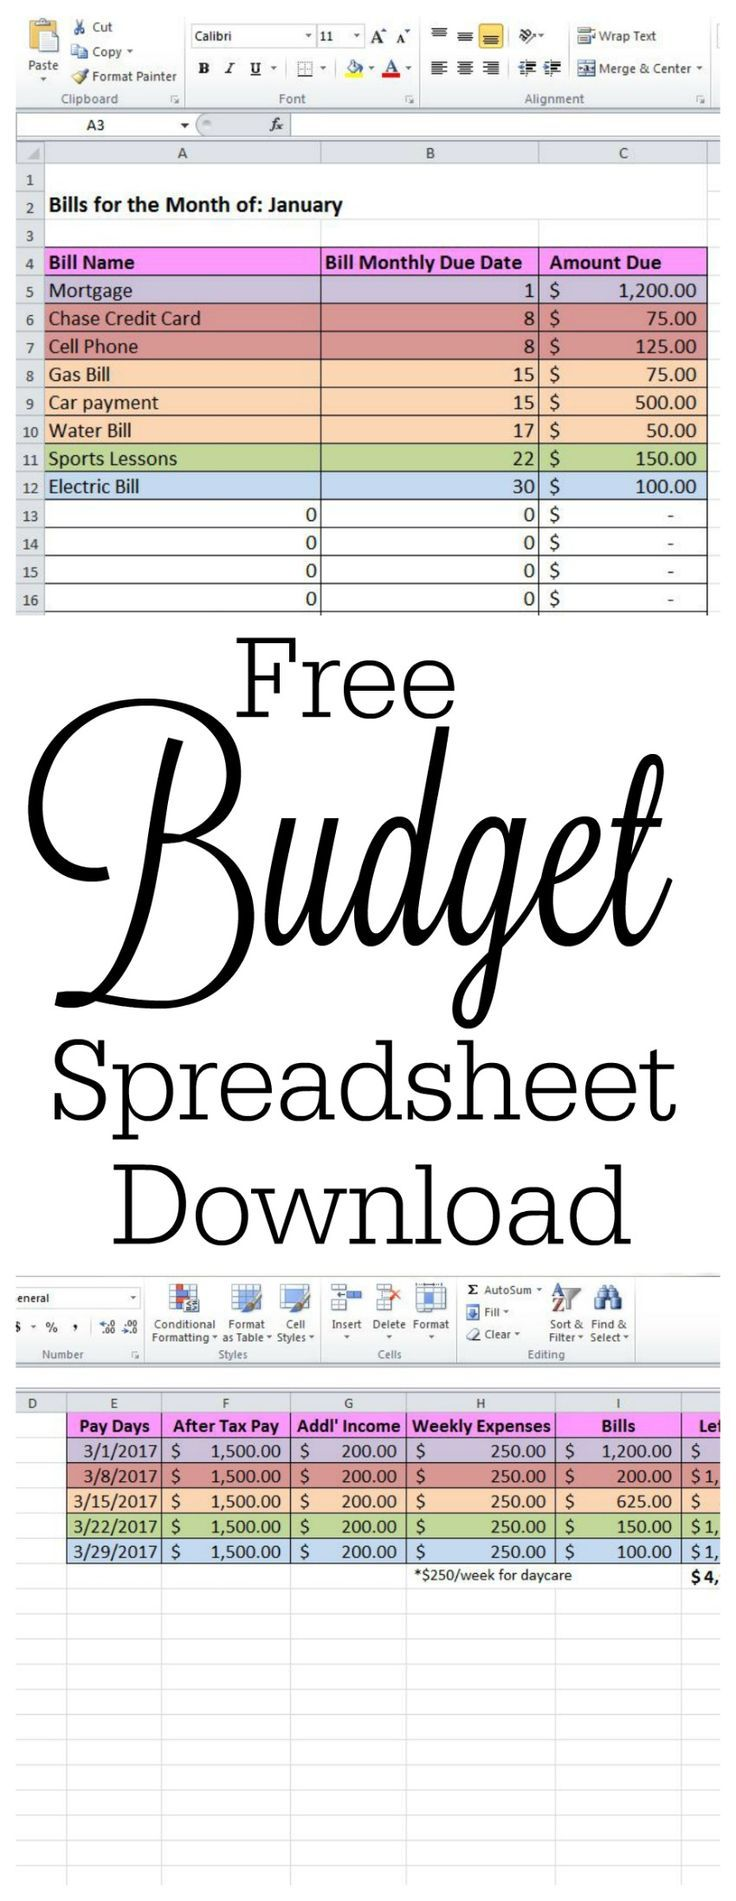 Full Size of Free Spreadsheet For Windows Cleaning Business Templates Budget Planner Worksheet Bill Download 8